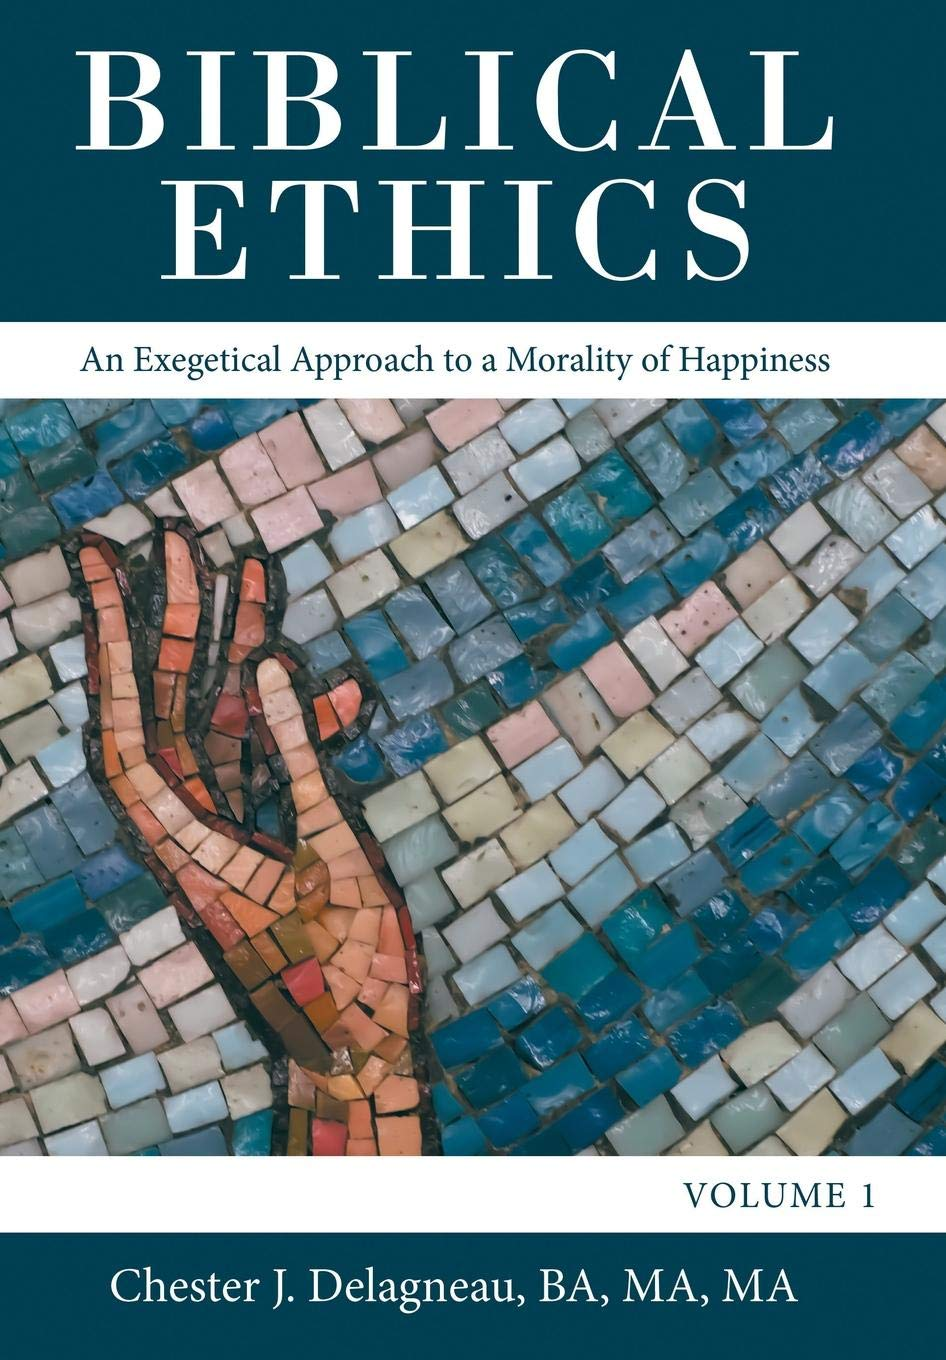 Biblical Ethics: An Exegetical Approach to a Morality of